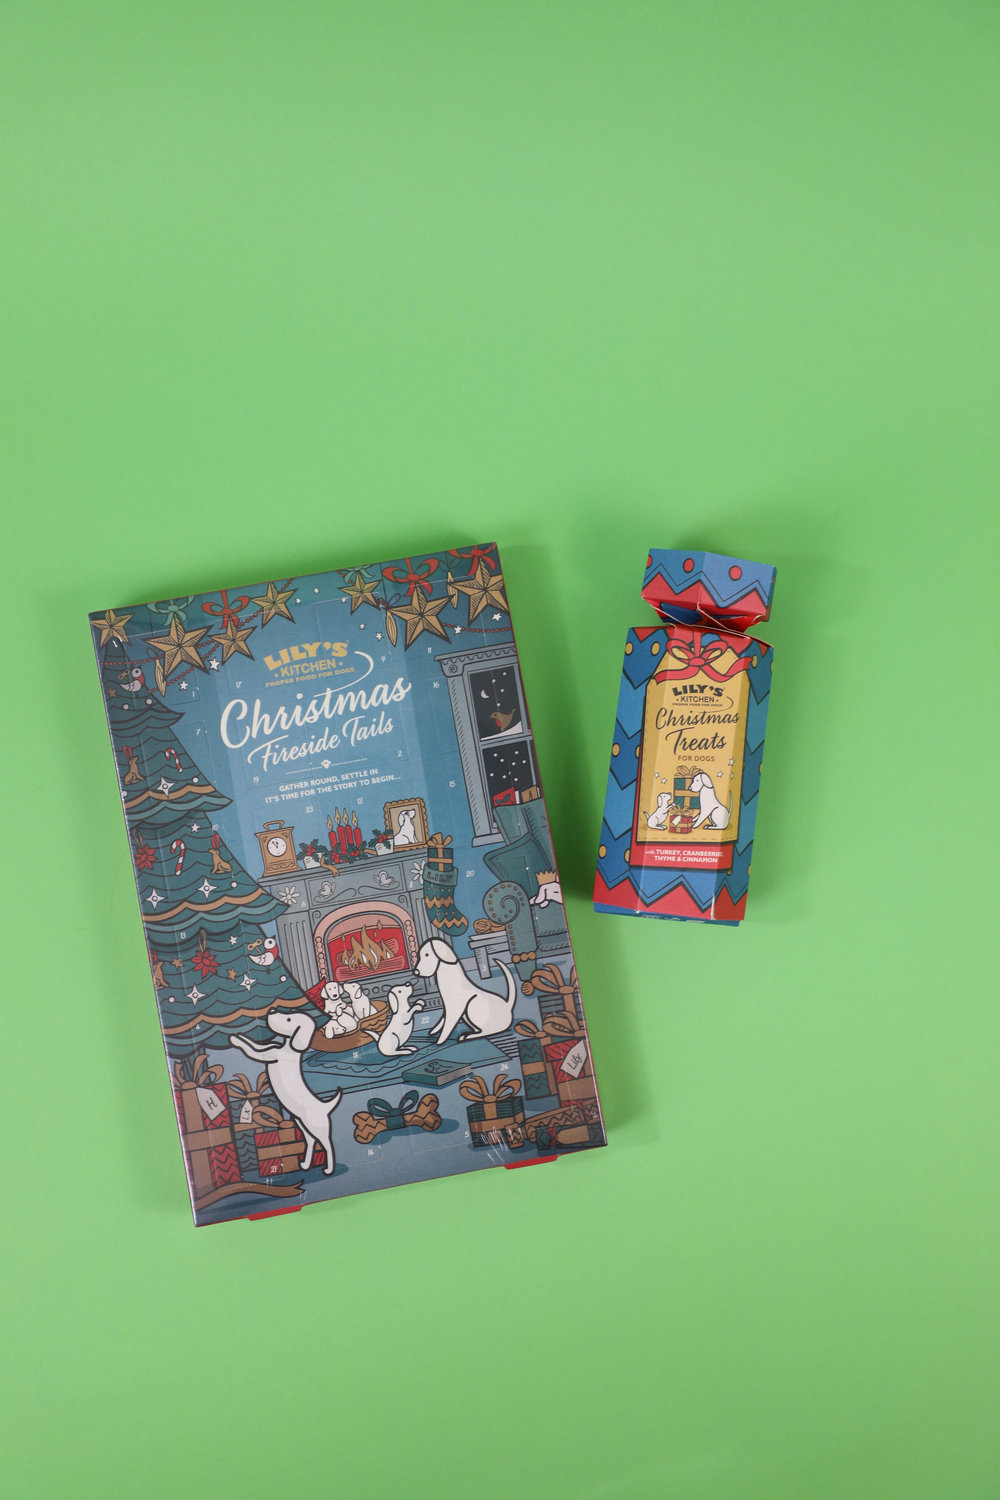 *Goodie bag contents will vary from bag to bag. Advent calendars are only available until the end of November. Goodie bags include a gift for your dog and for you.